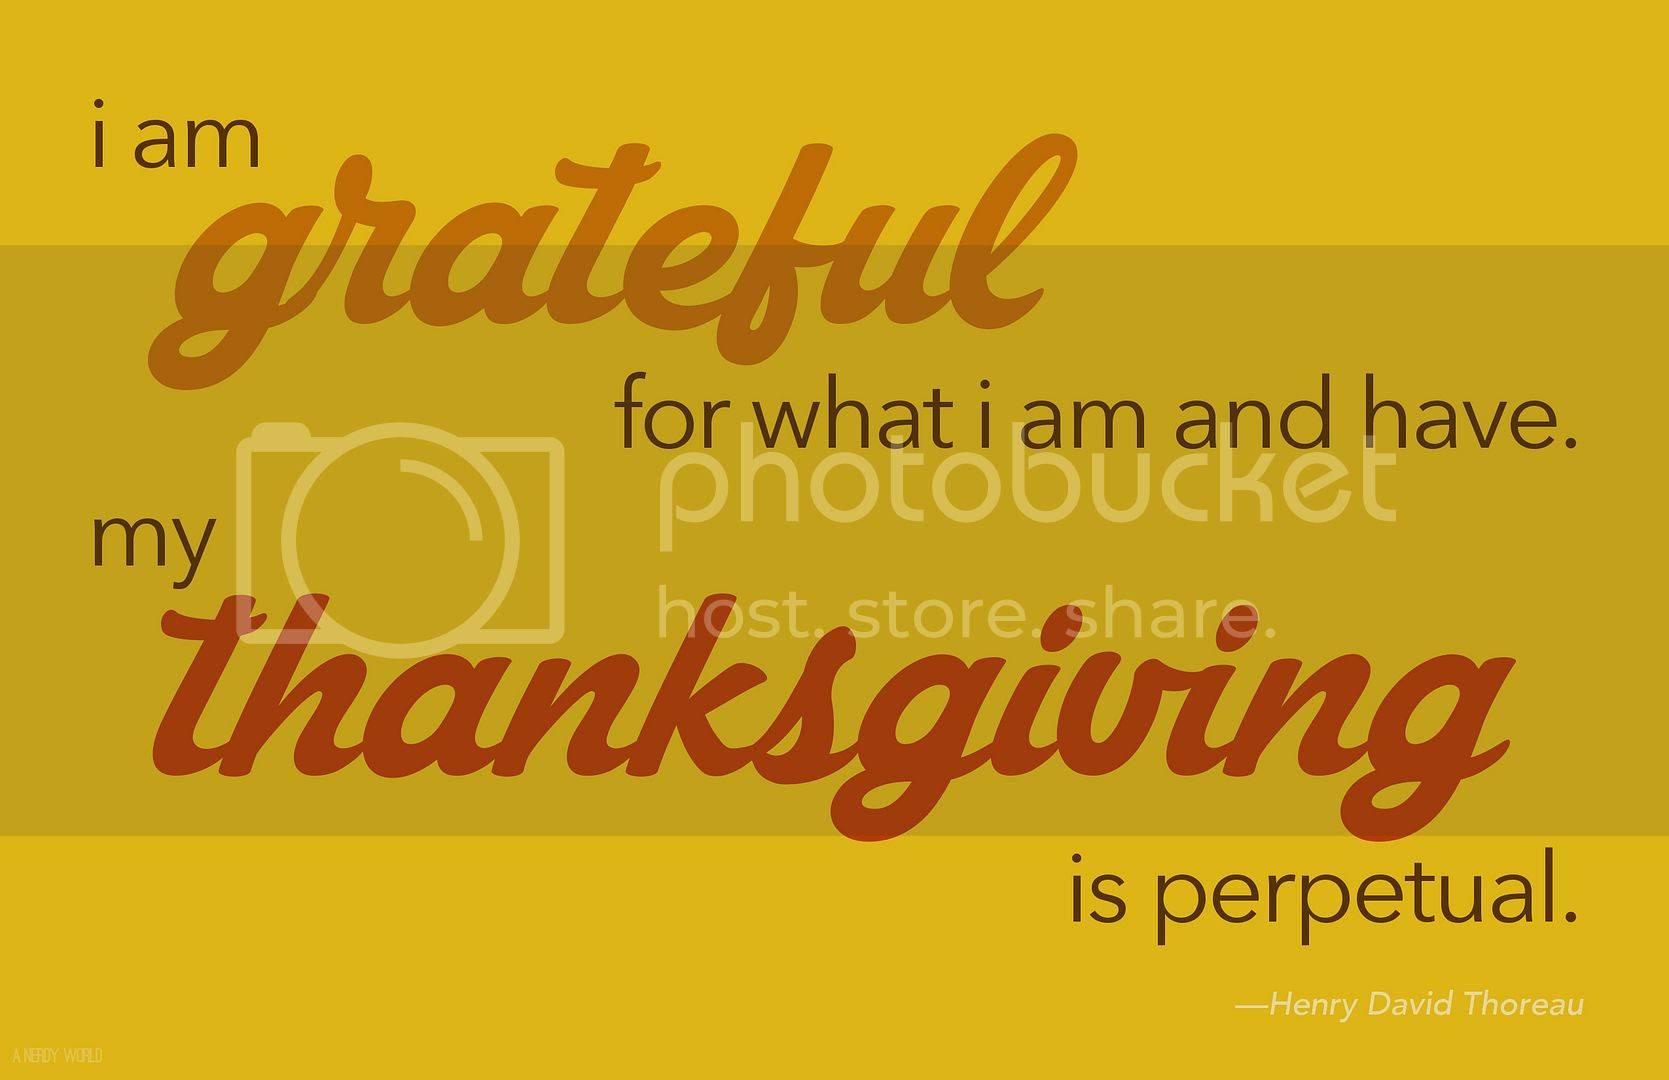 A Nerdy World Giving Thanks